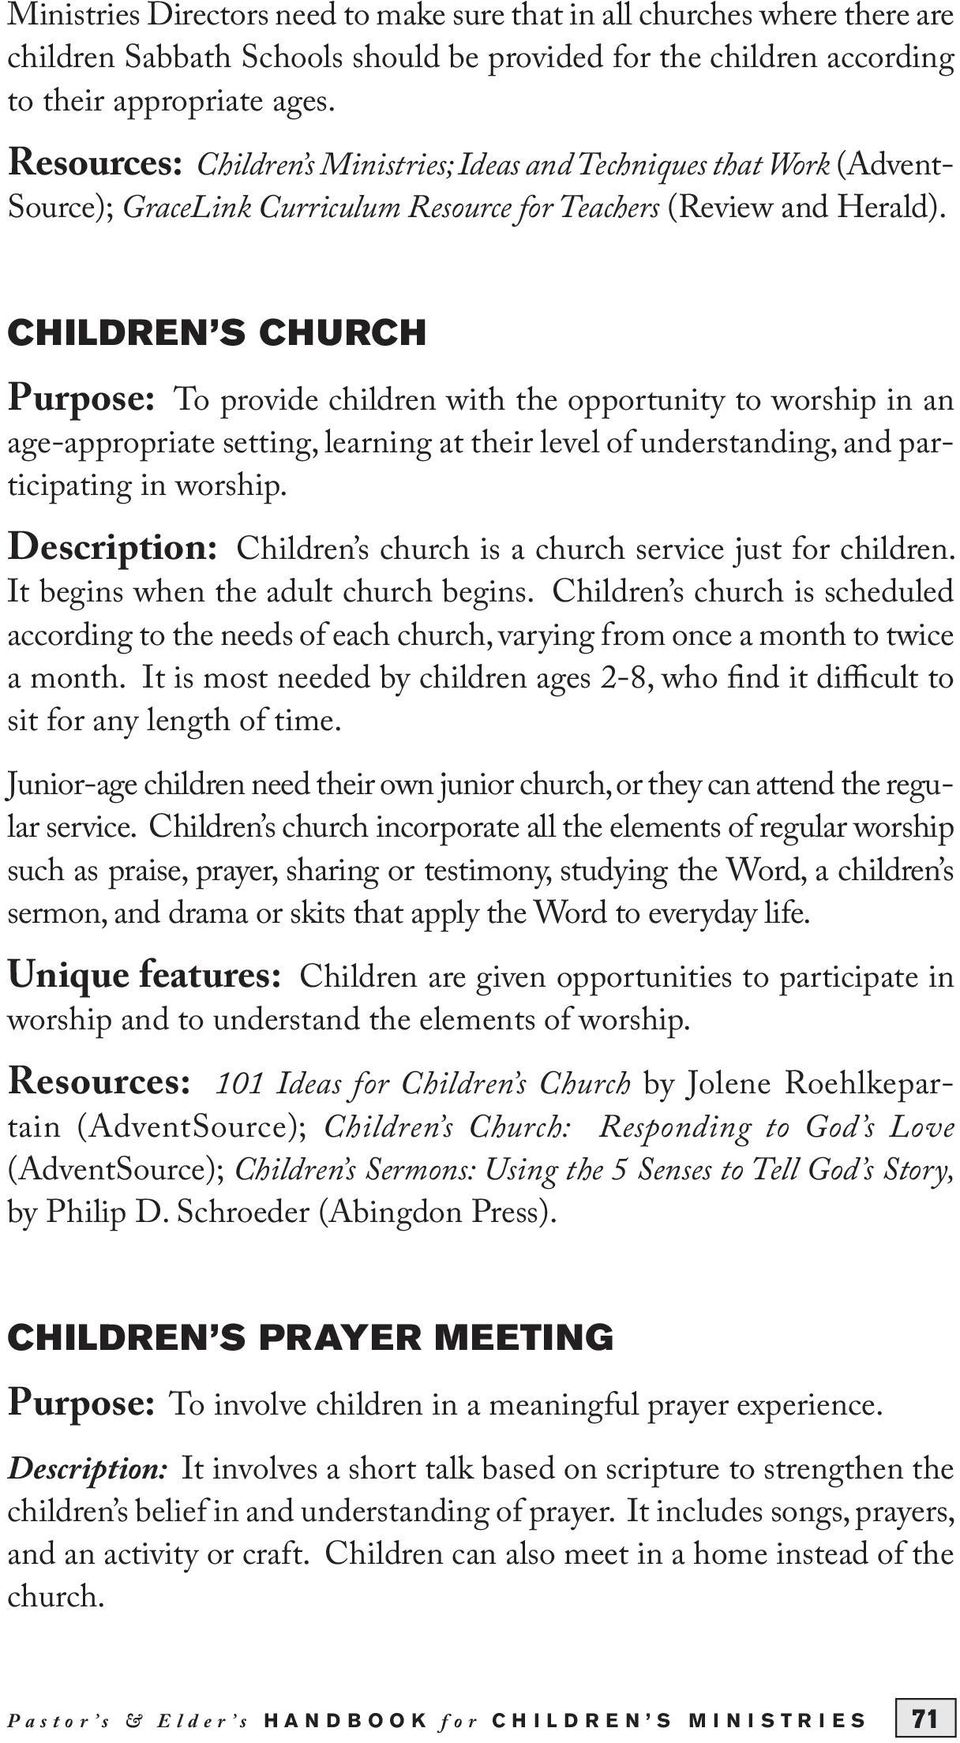 CHILDREN S CHURCH Purpose: To provide children with the opportunity to worship in an age-appropriate setting, learning at their level of understanding, and participating in worship.